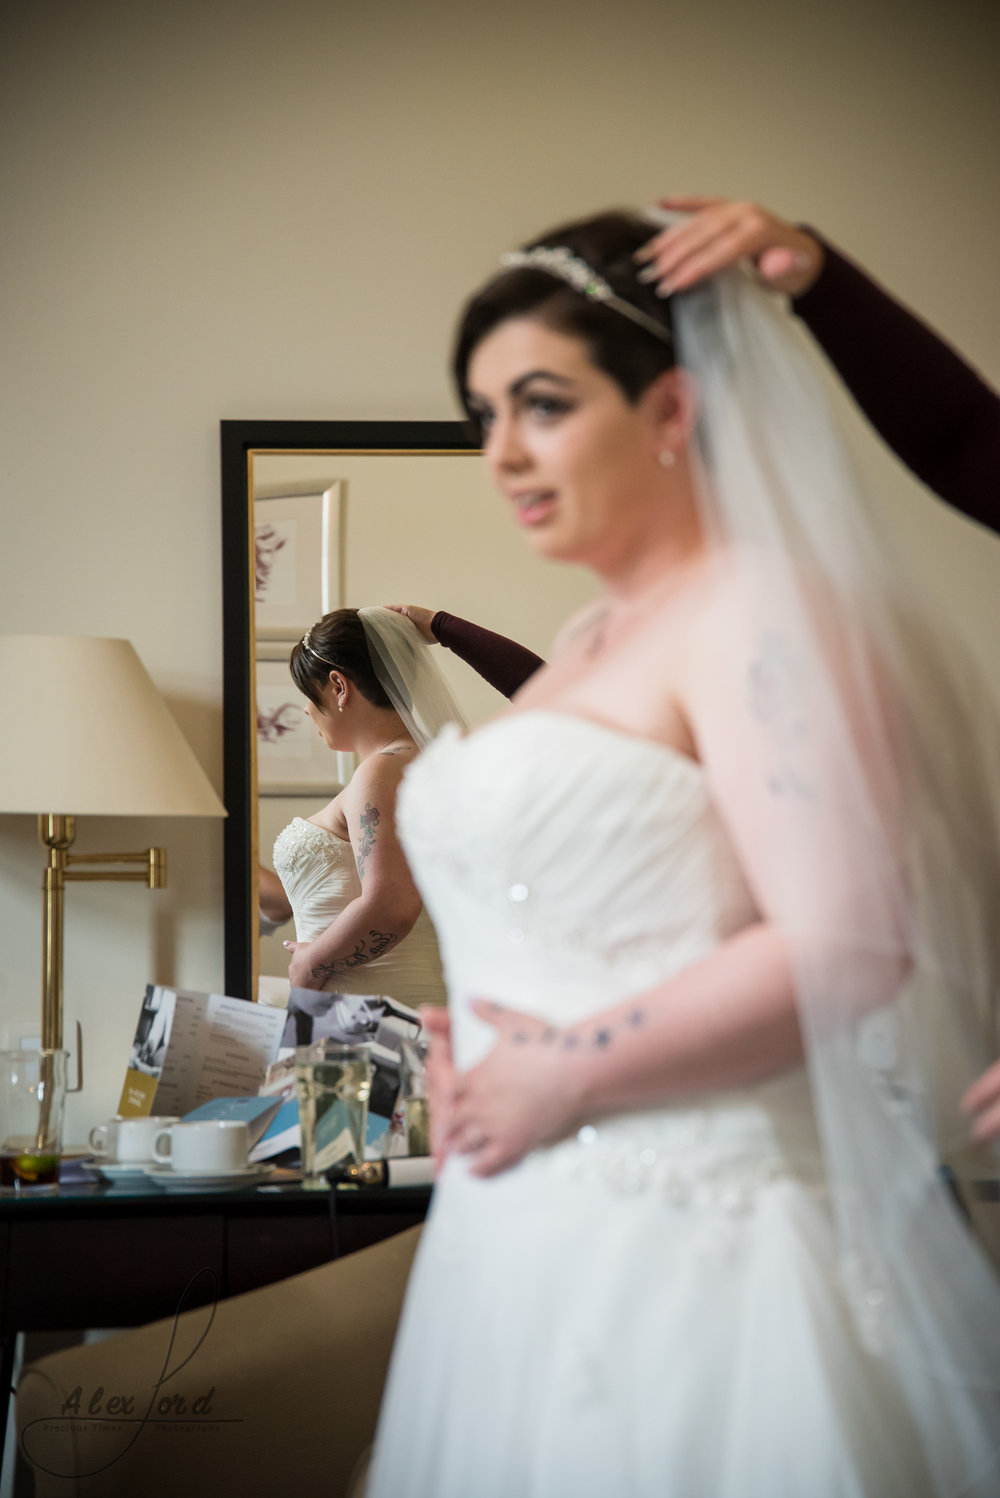 the bride has her veil fitted just before heading down for the wedding ceremony